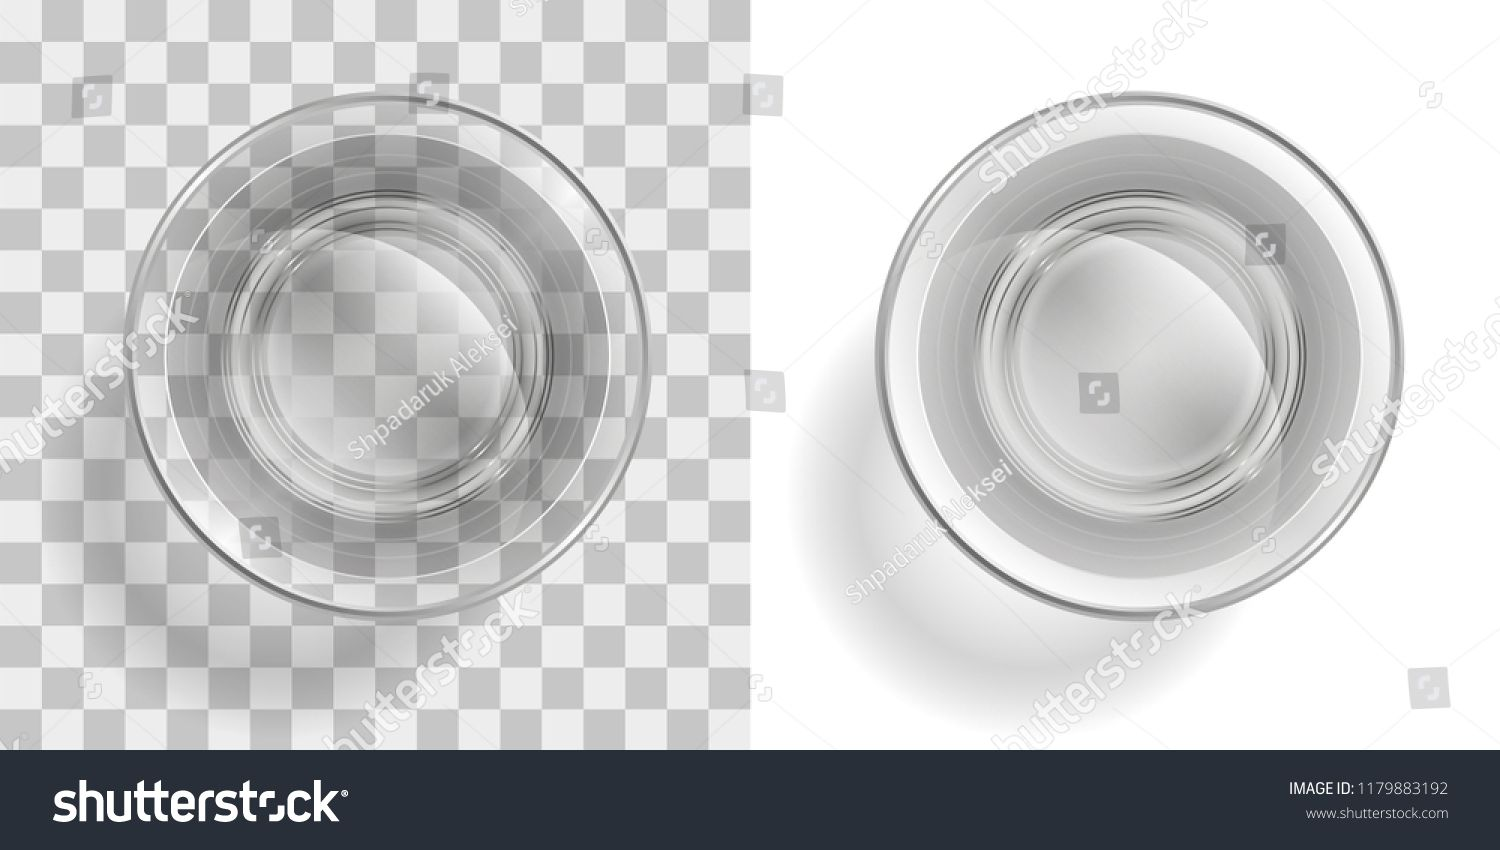 Vector Illustration Glass Of Water On A Transparent Background